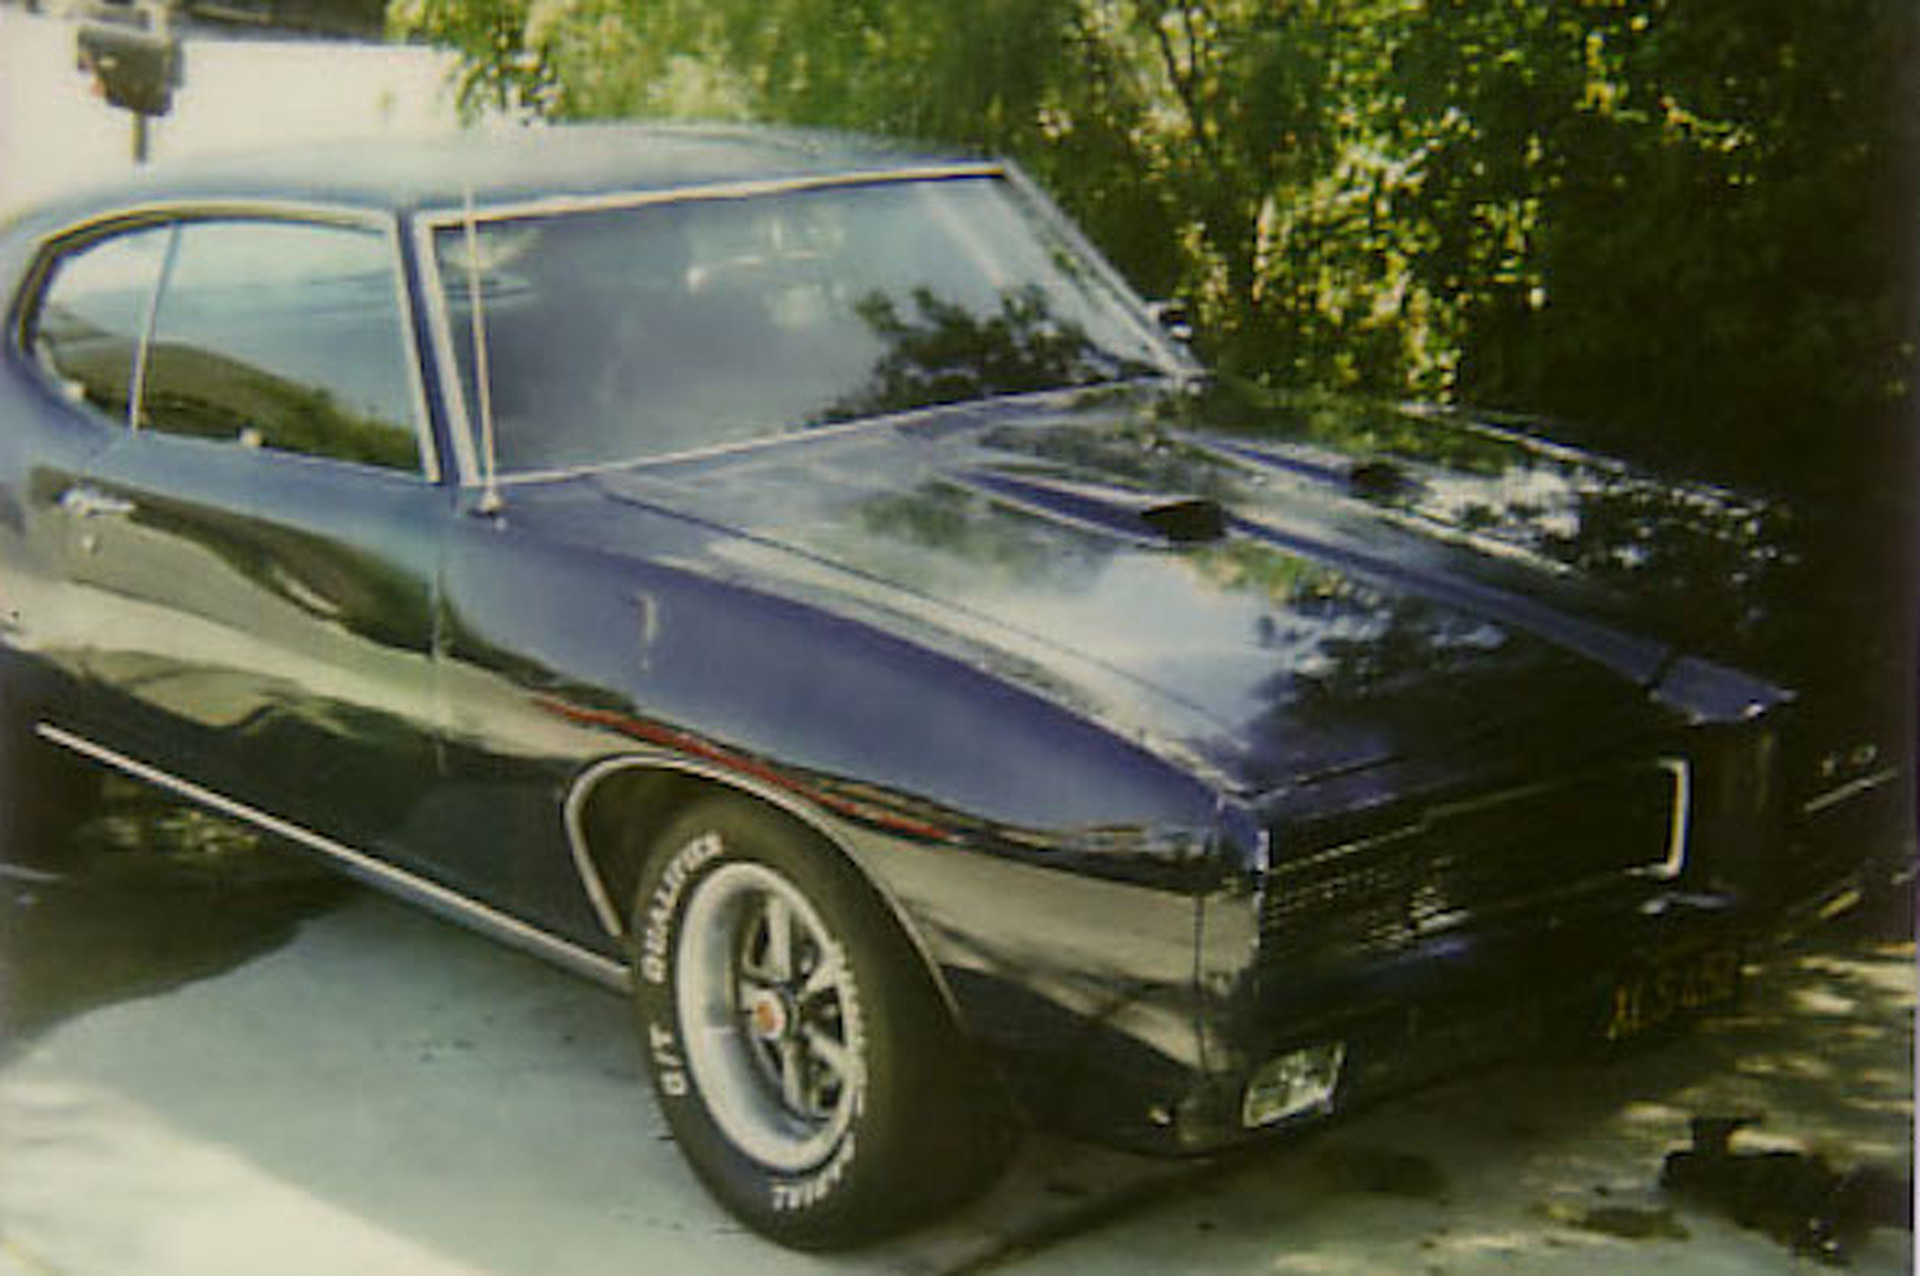 Your Ride: 1969 Pontiac GTO